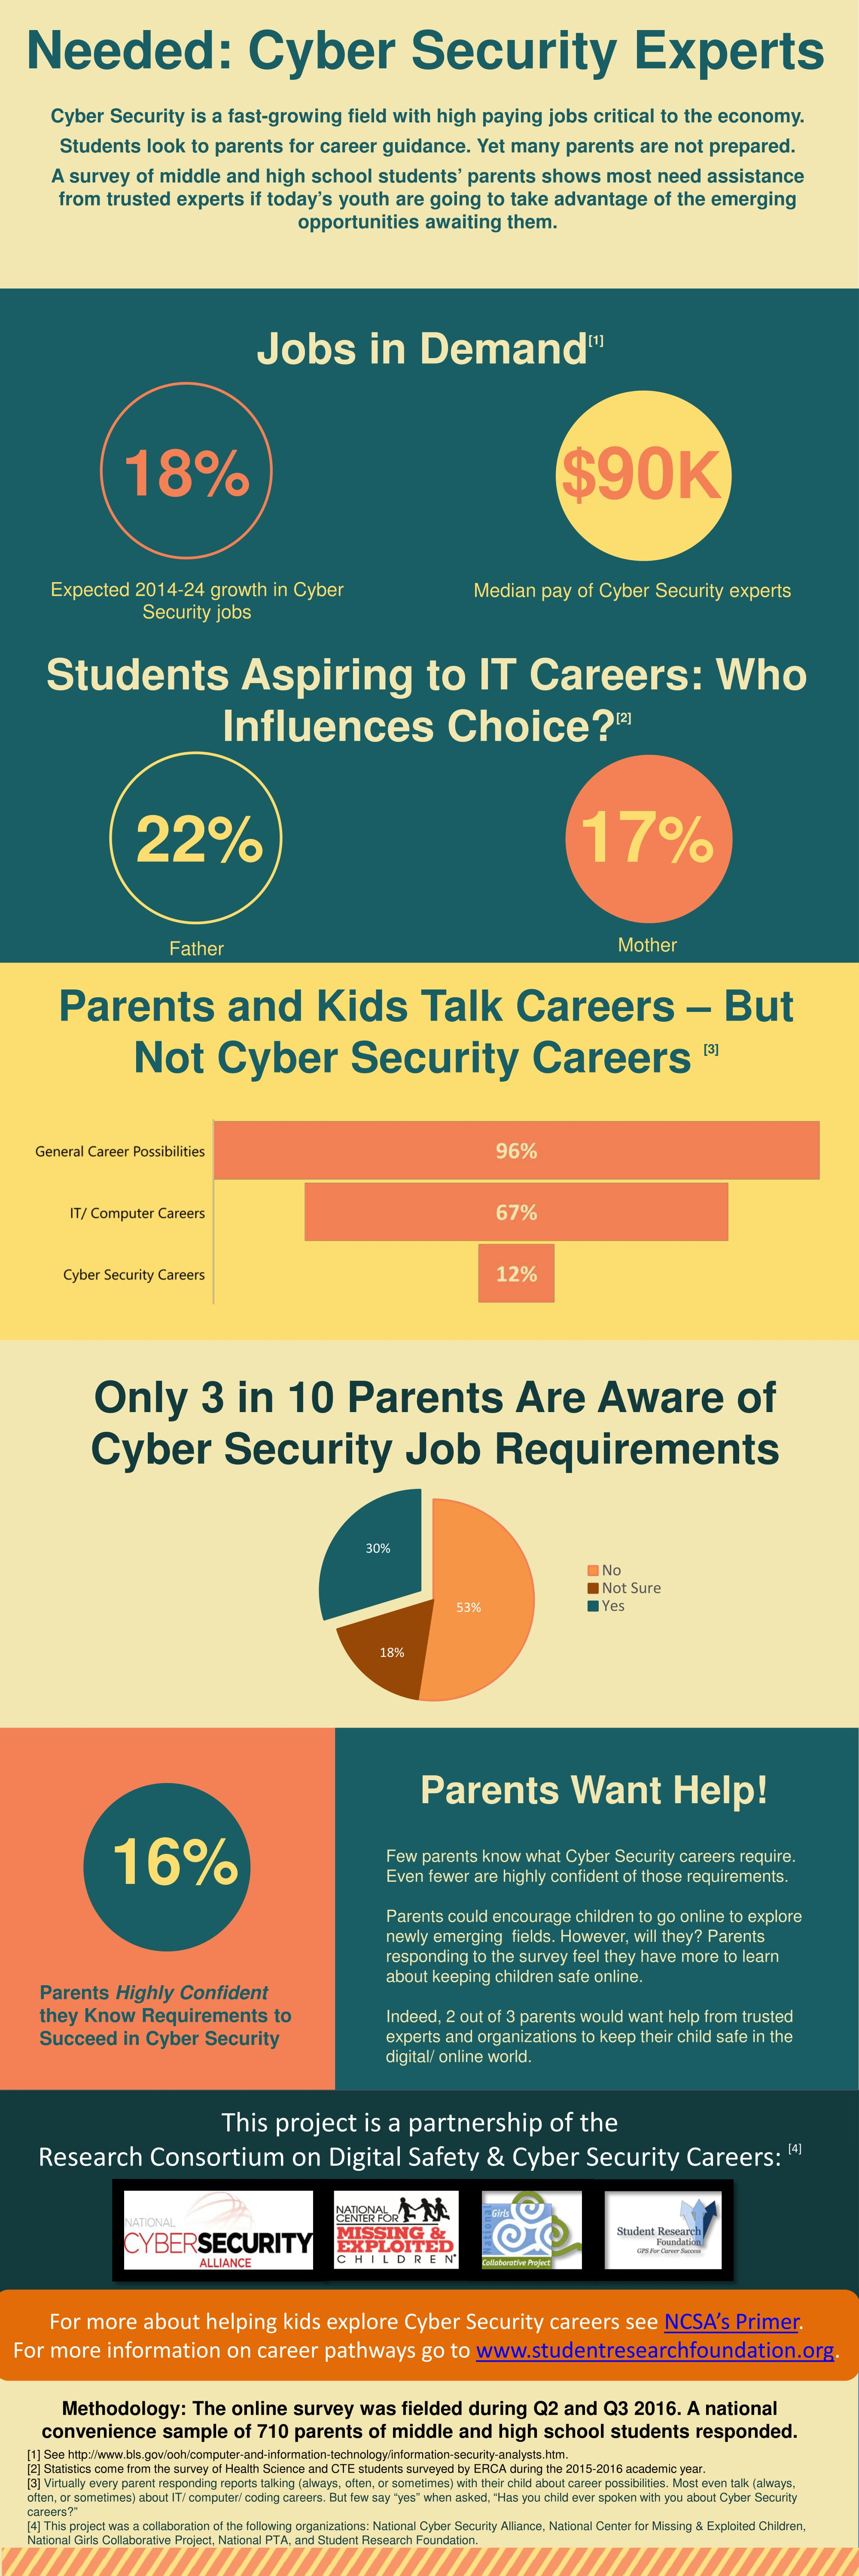 Are Cyber Security Careers a Good Choice? Student Research Foundation Infographic